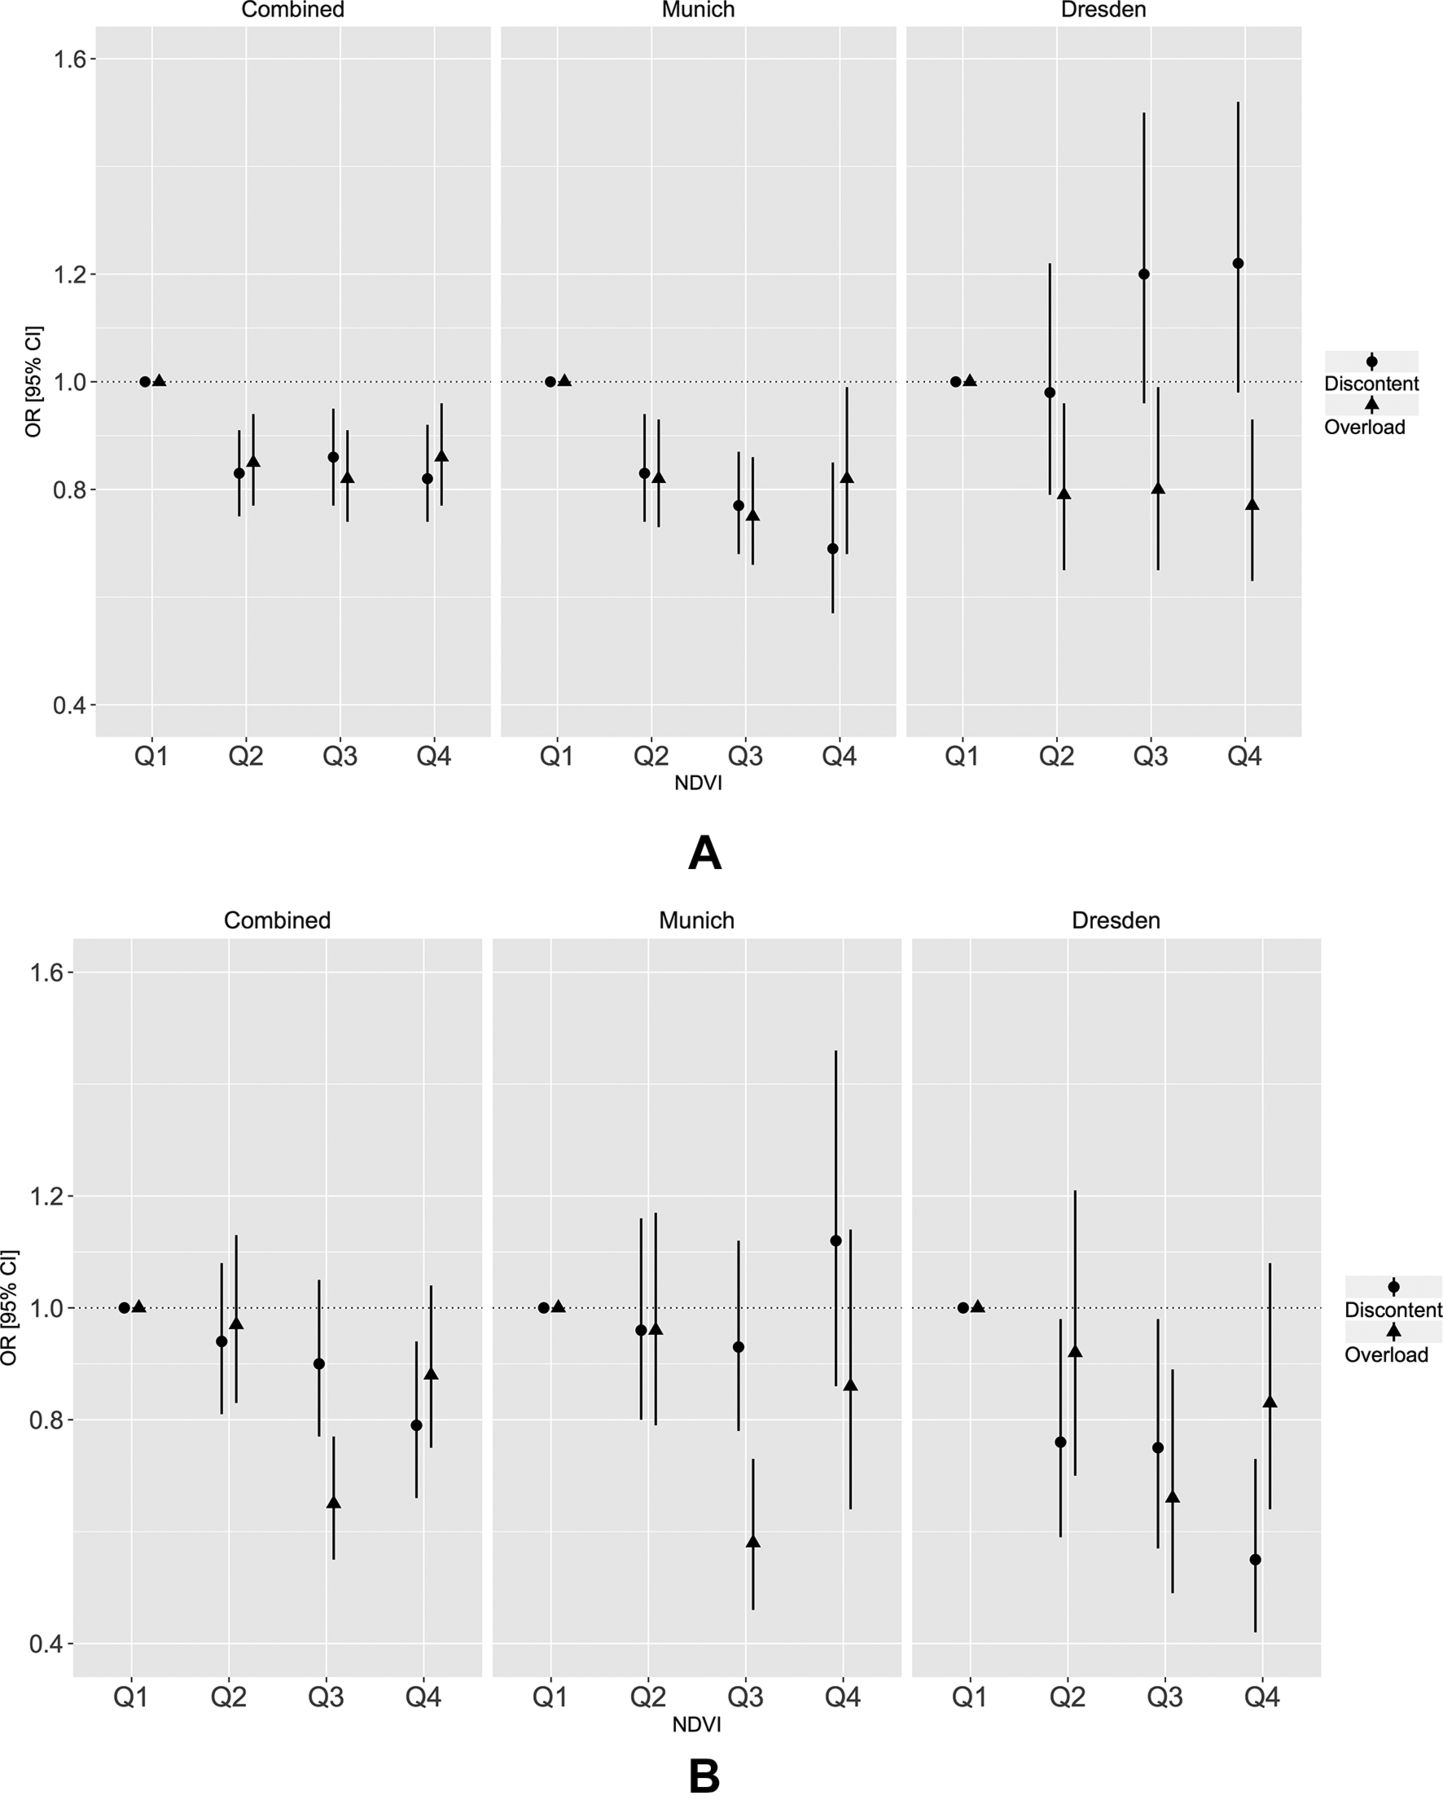 Greenness and job-related chronic stress in young adults: a